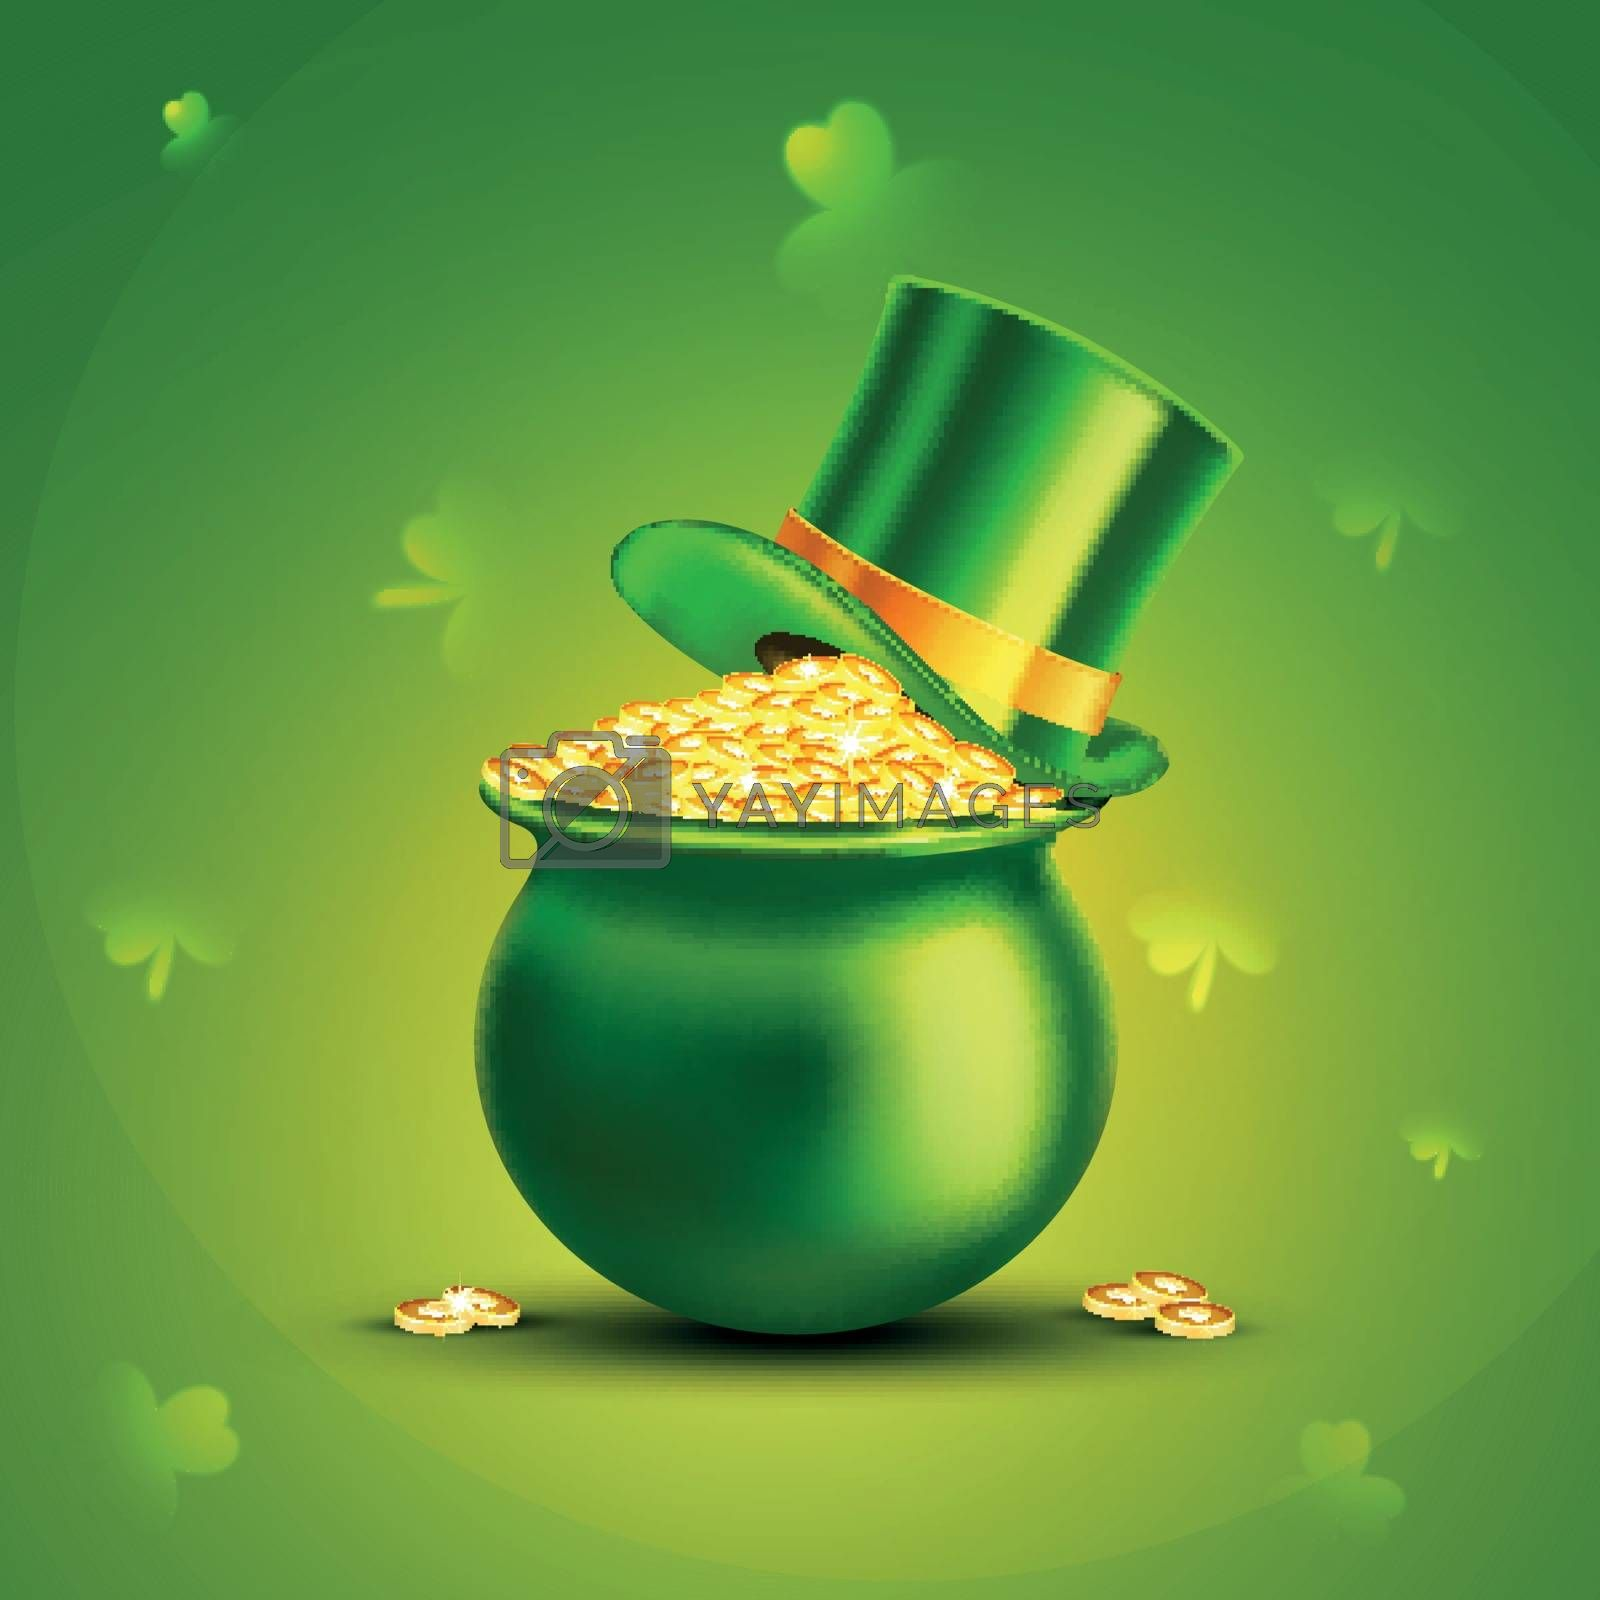 Glossy Green Pot full of Gold Coins with Leprechaun Hat on shamrock leaves decorated background for Happy St. Patrick's Day celebration.